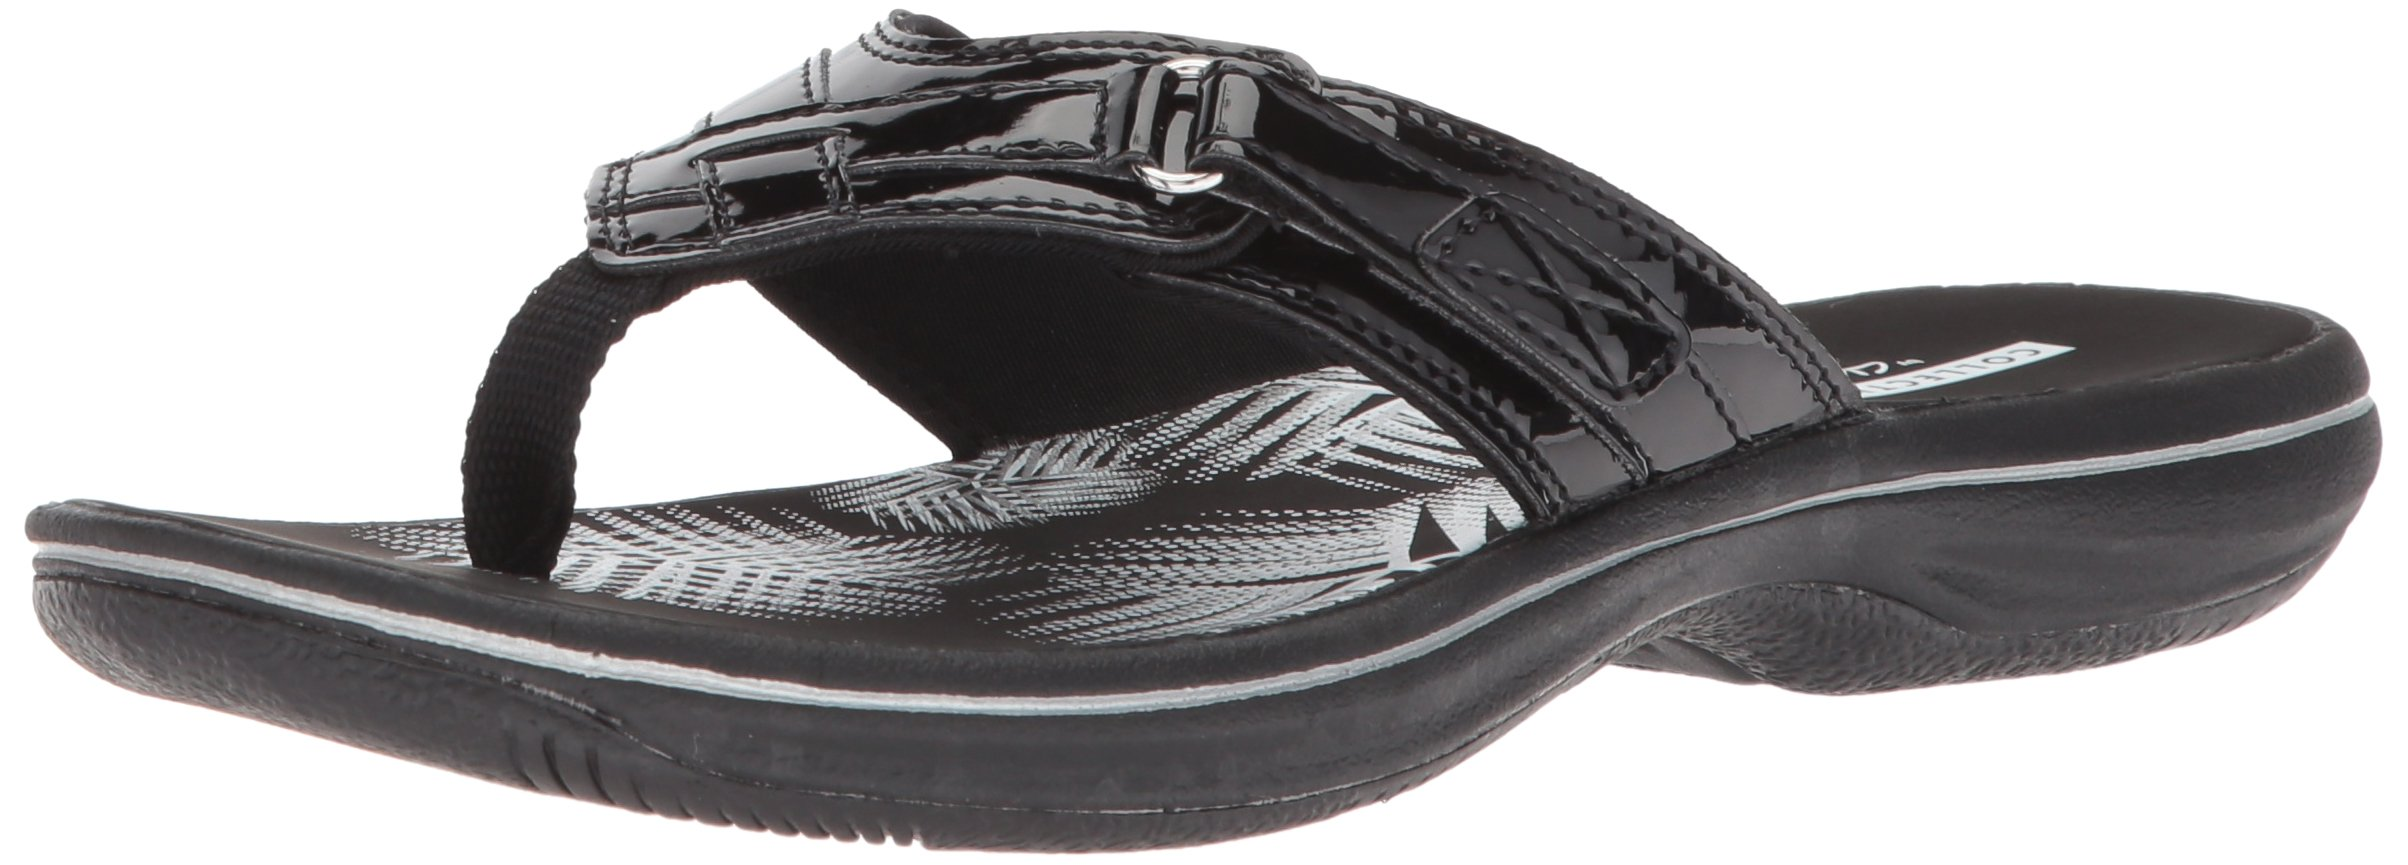 CLARKS Women's Breeze SEA Platform, Black Synthetic Patent, 8 B(M) US